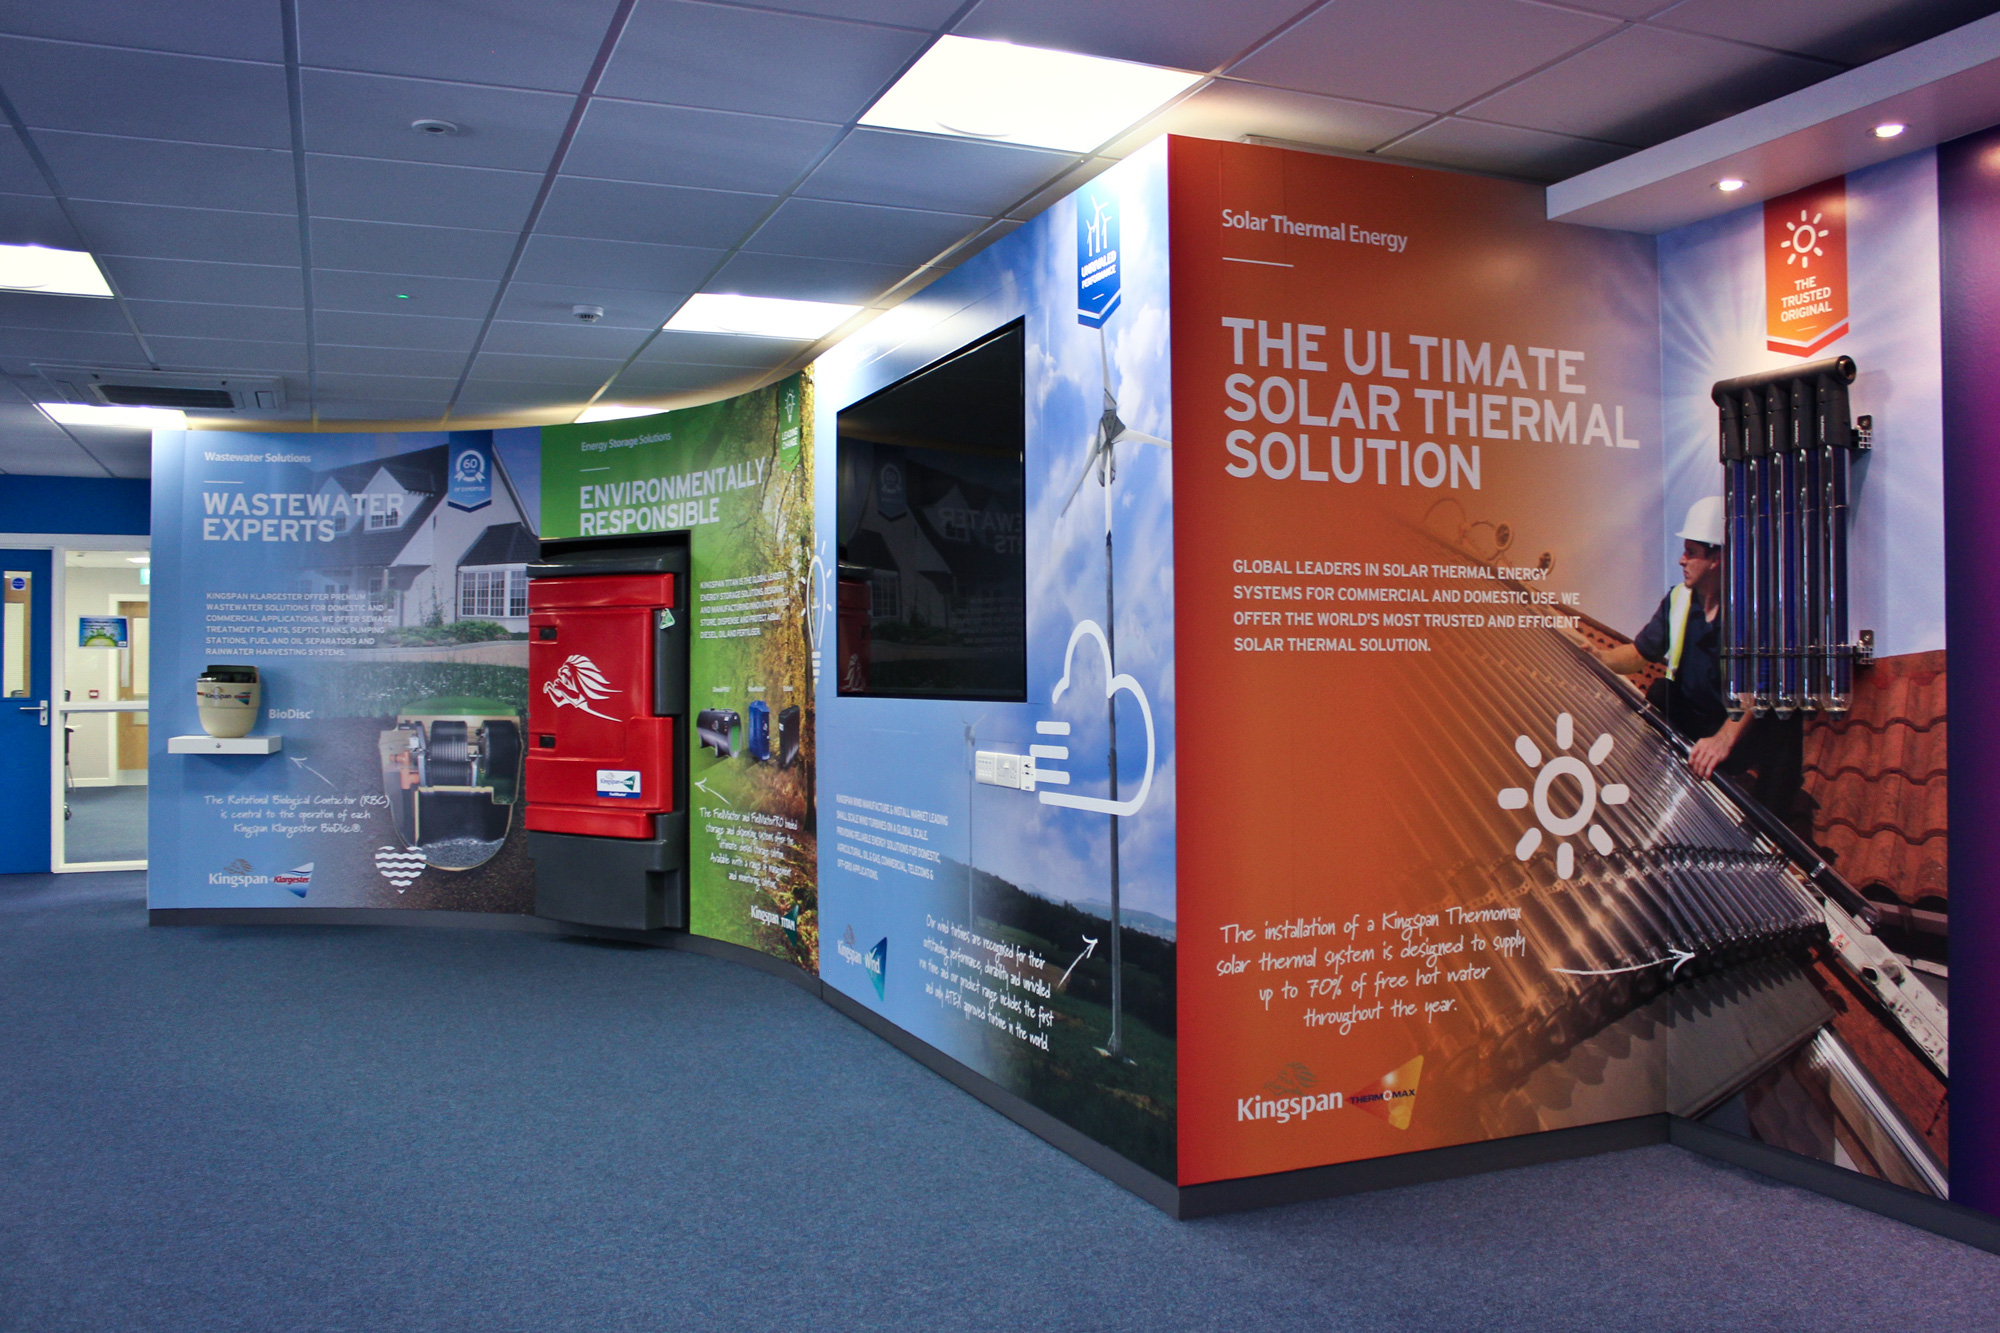 Kingspan Office Fit Out headline image